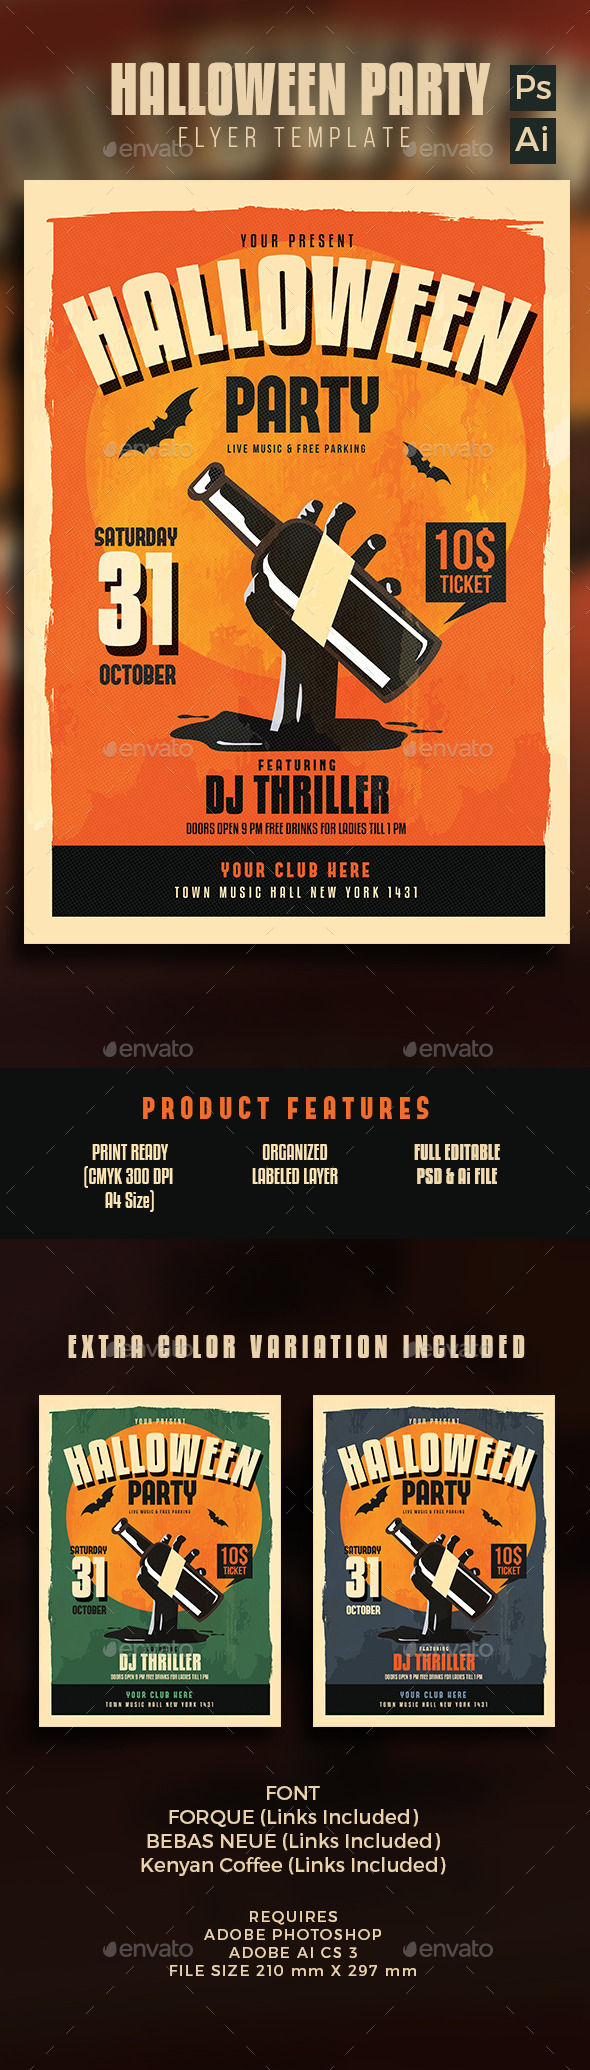 Halloween Party Flyer by Guuver (Halloween party flyer)